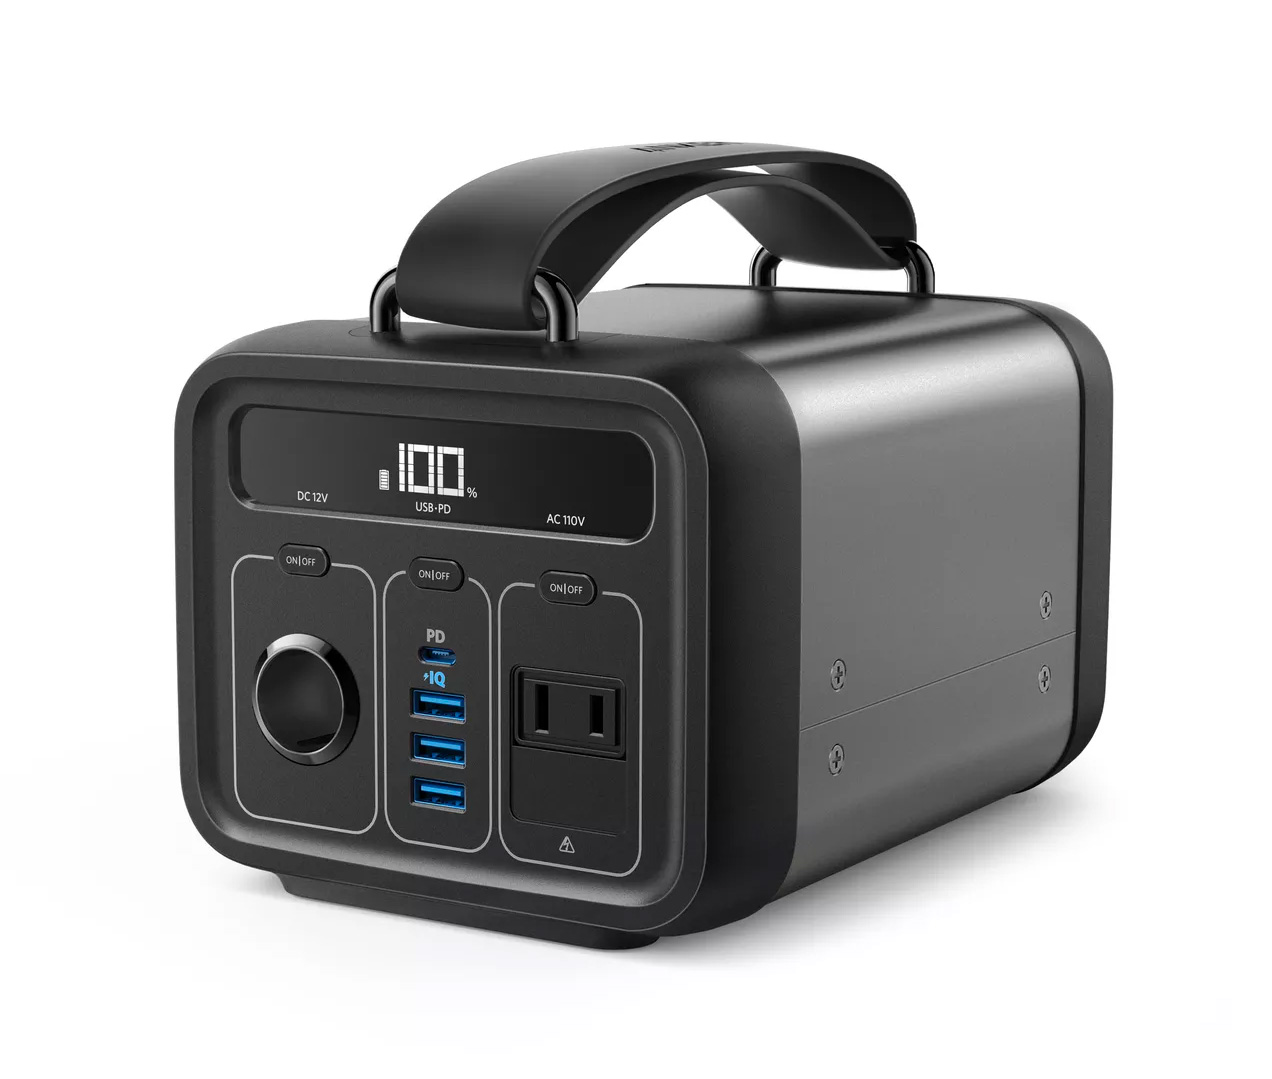 Anker's PowerHouse 200 is Portable & Plenty Powerful at werd.com